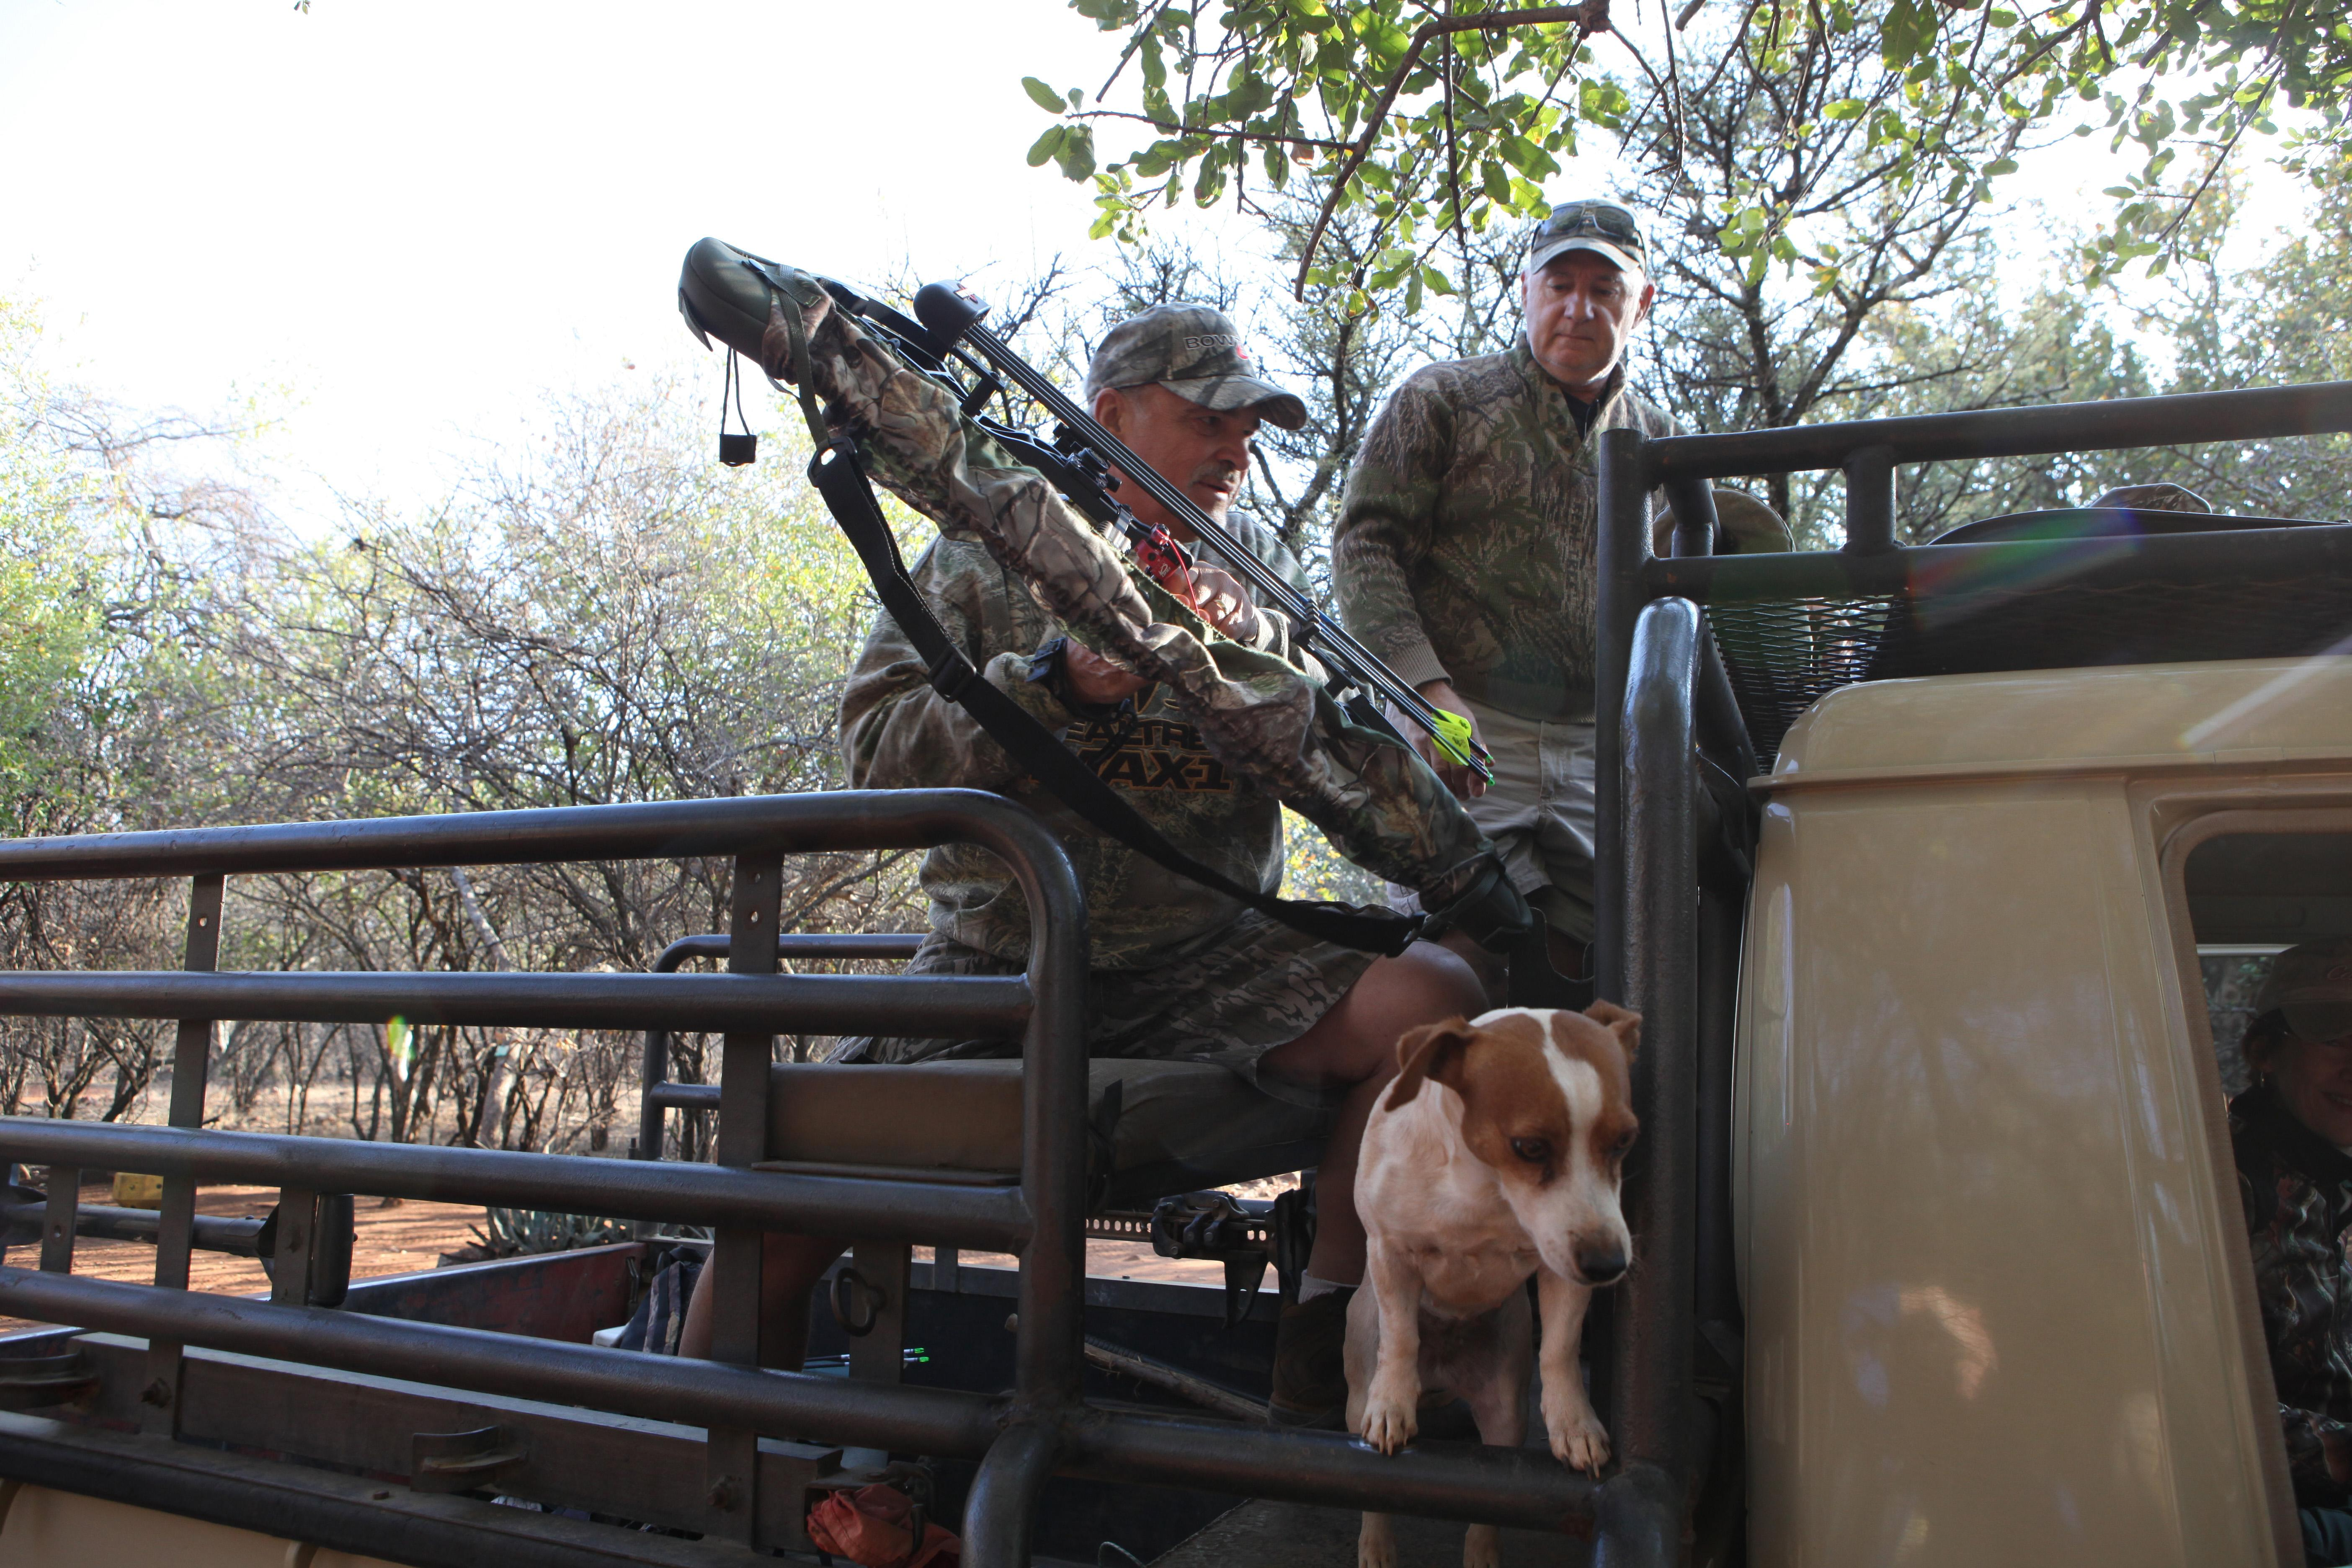 South Africa hunting reserve caters to bow and arrow hunters